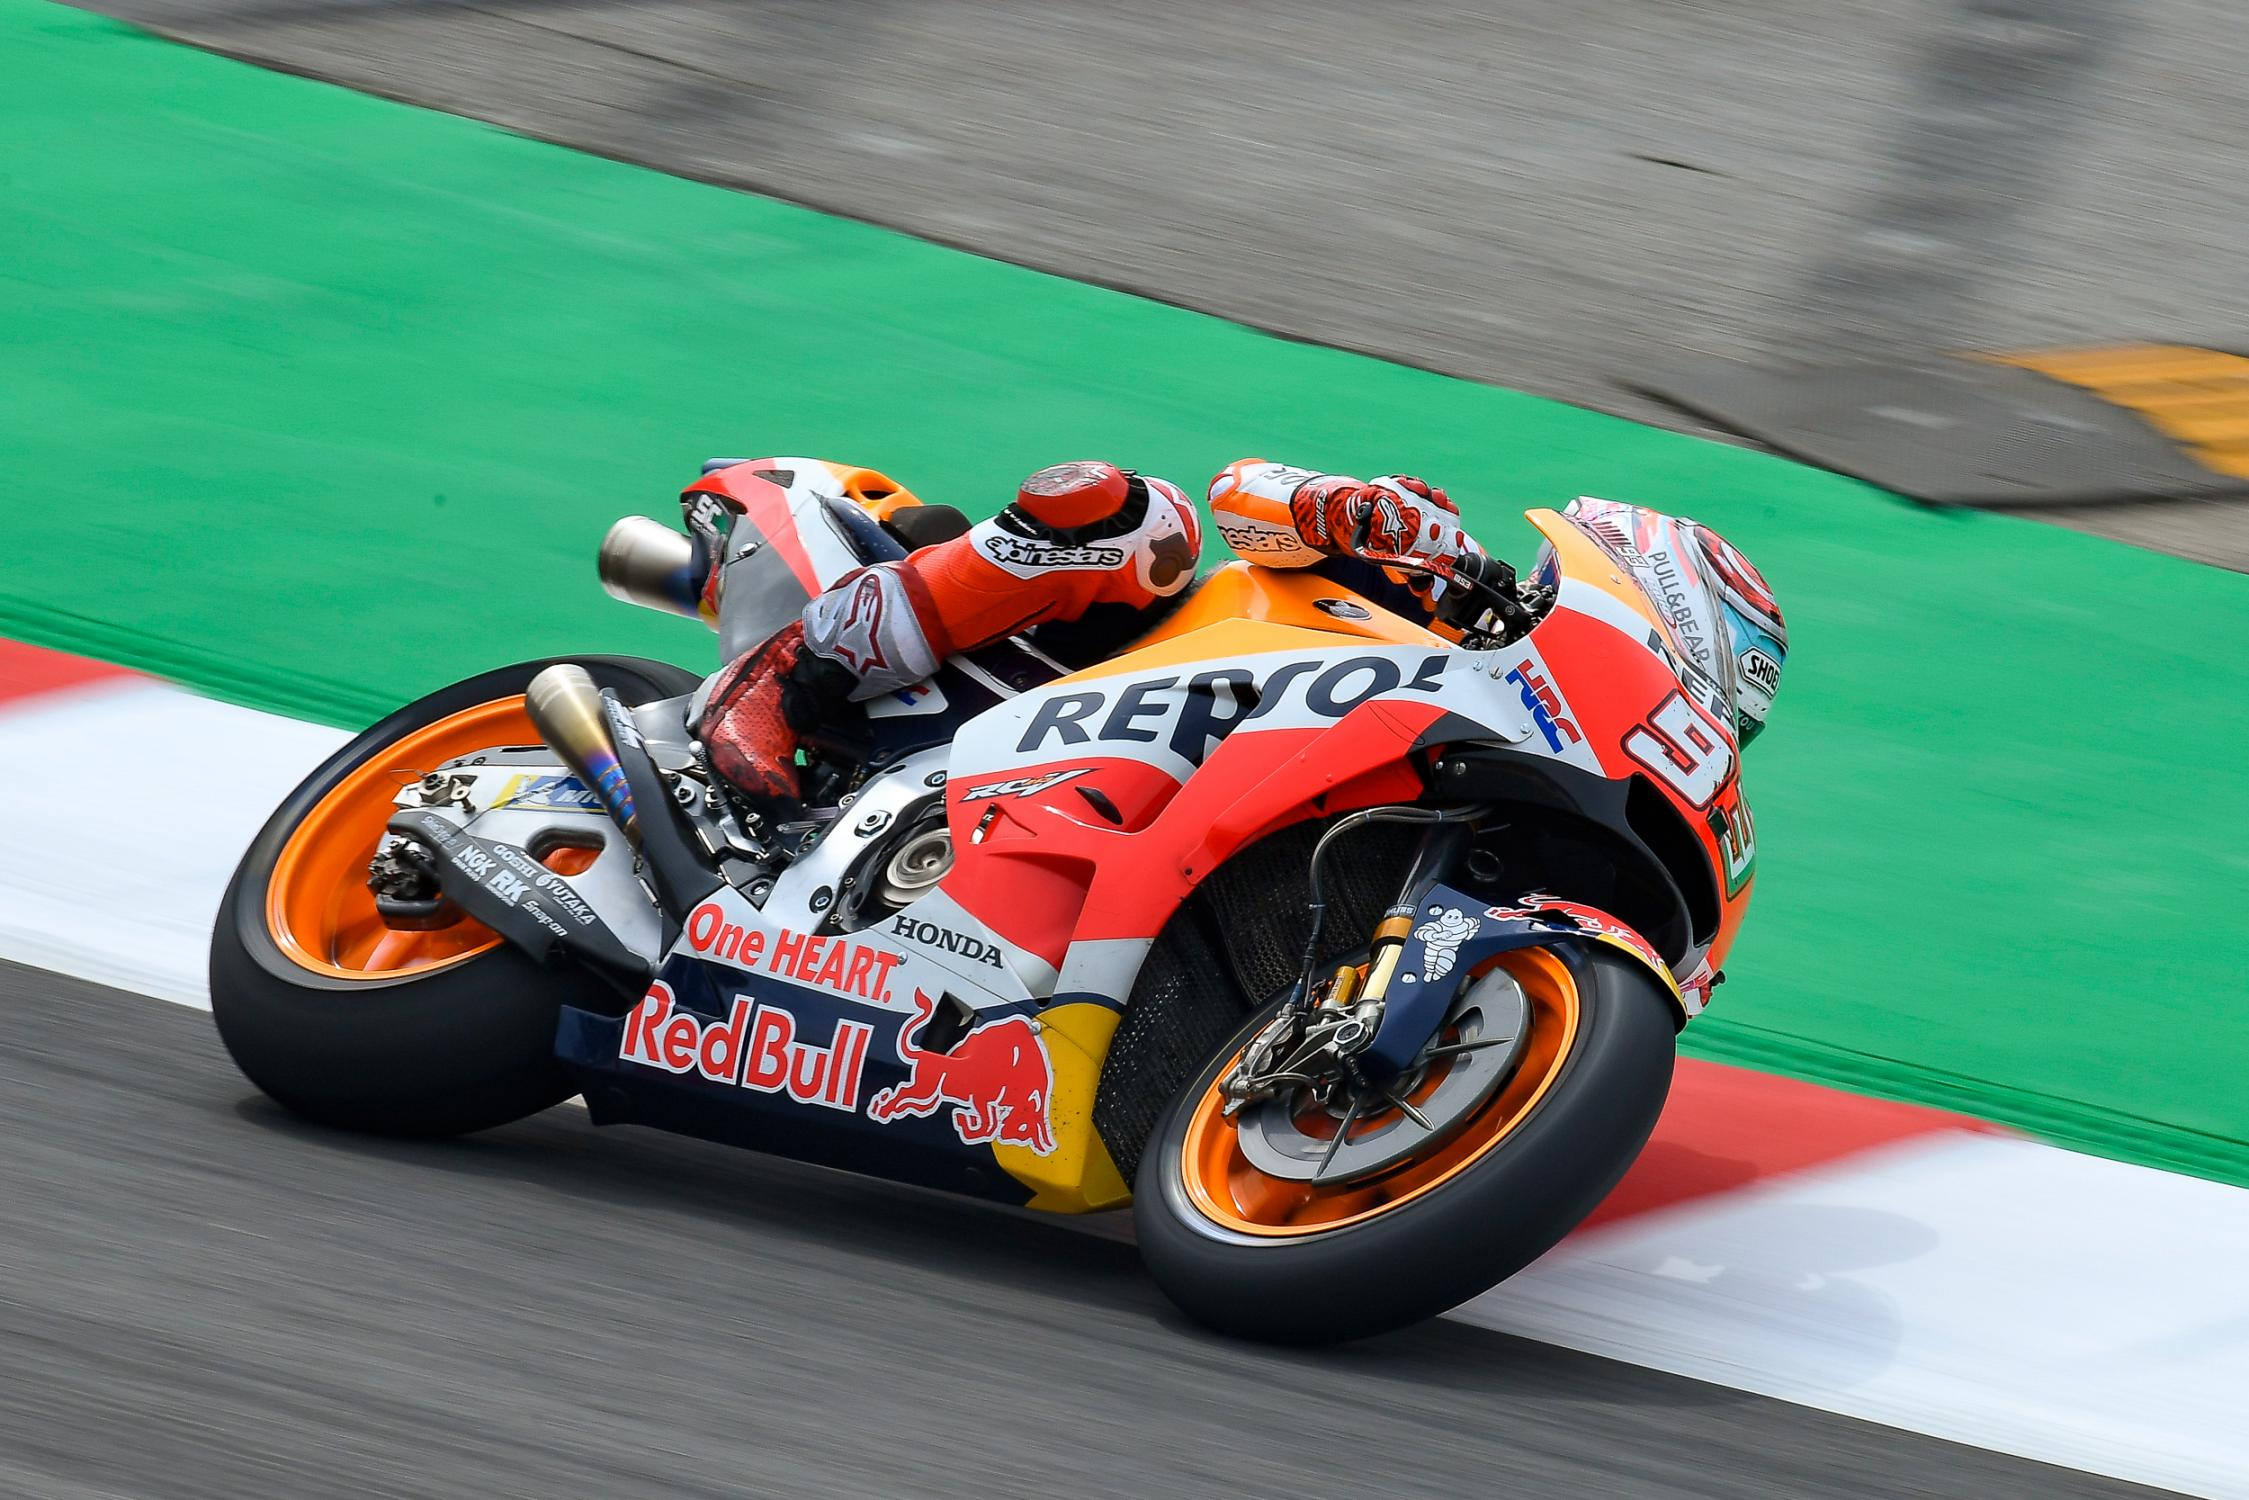 93-marc-marquez-esp_ds52987.gallery_full_top_fullscreen.jpg